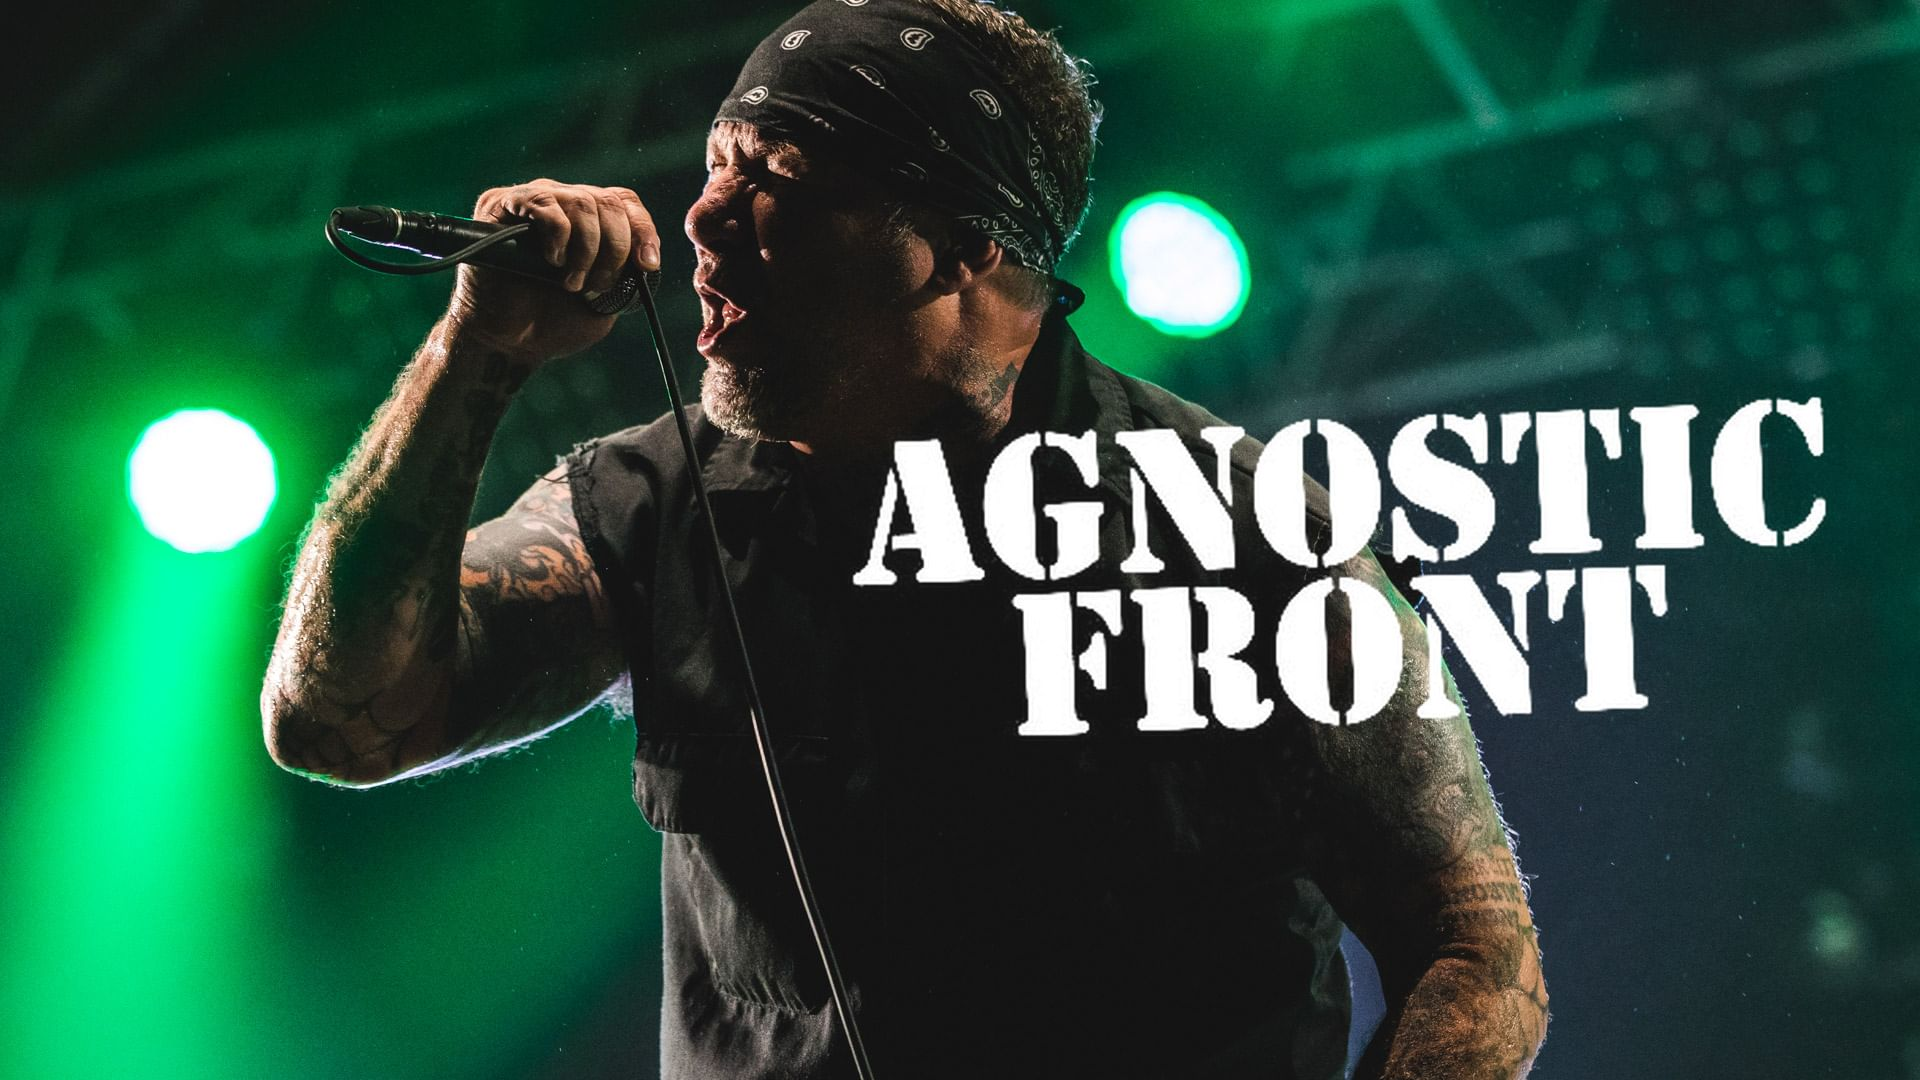 Agnostic Front (Hellfest 2013)